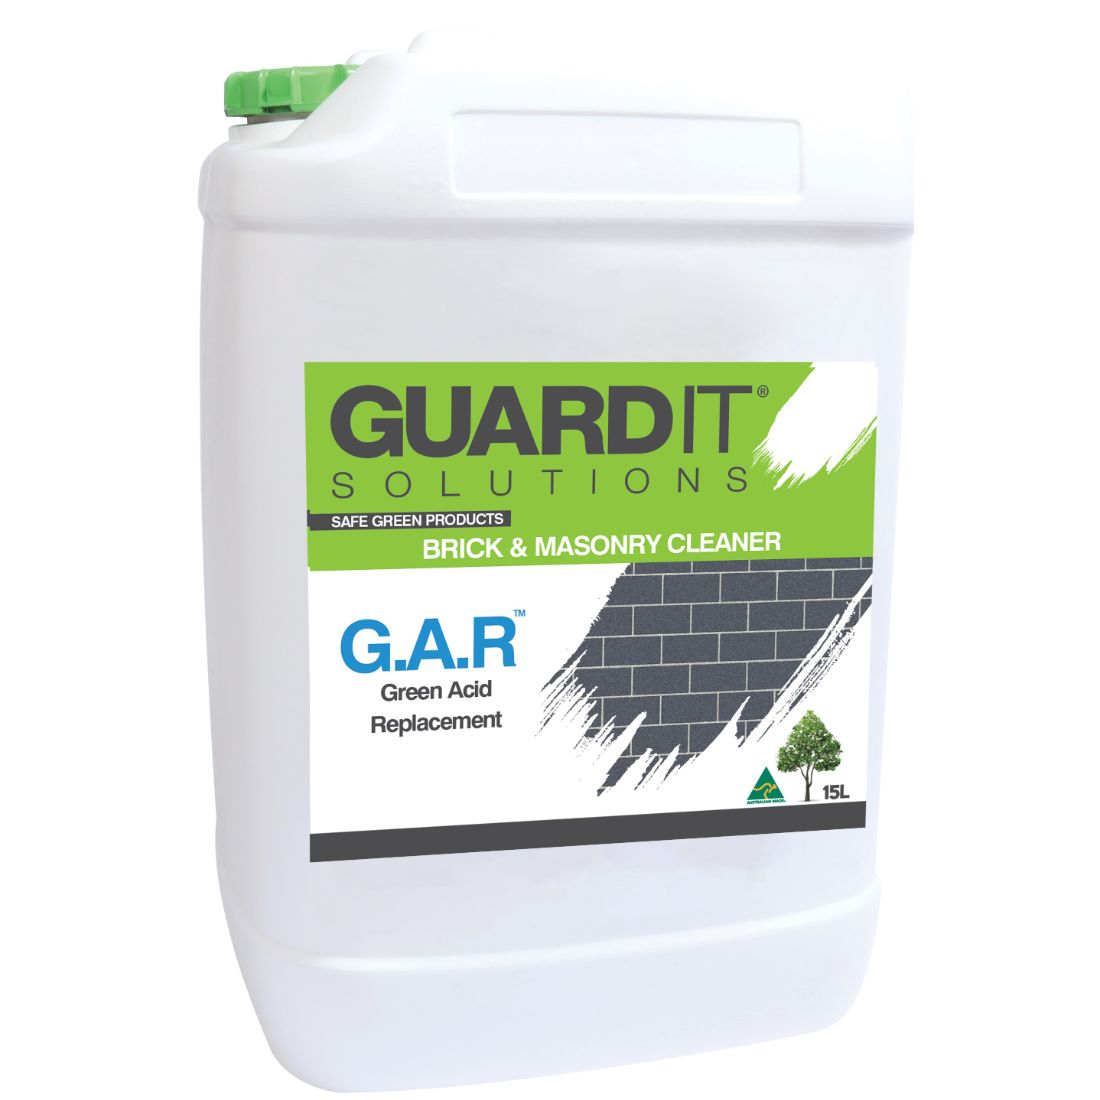 15L Green Acid Replacement Concrete Remover